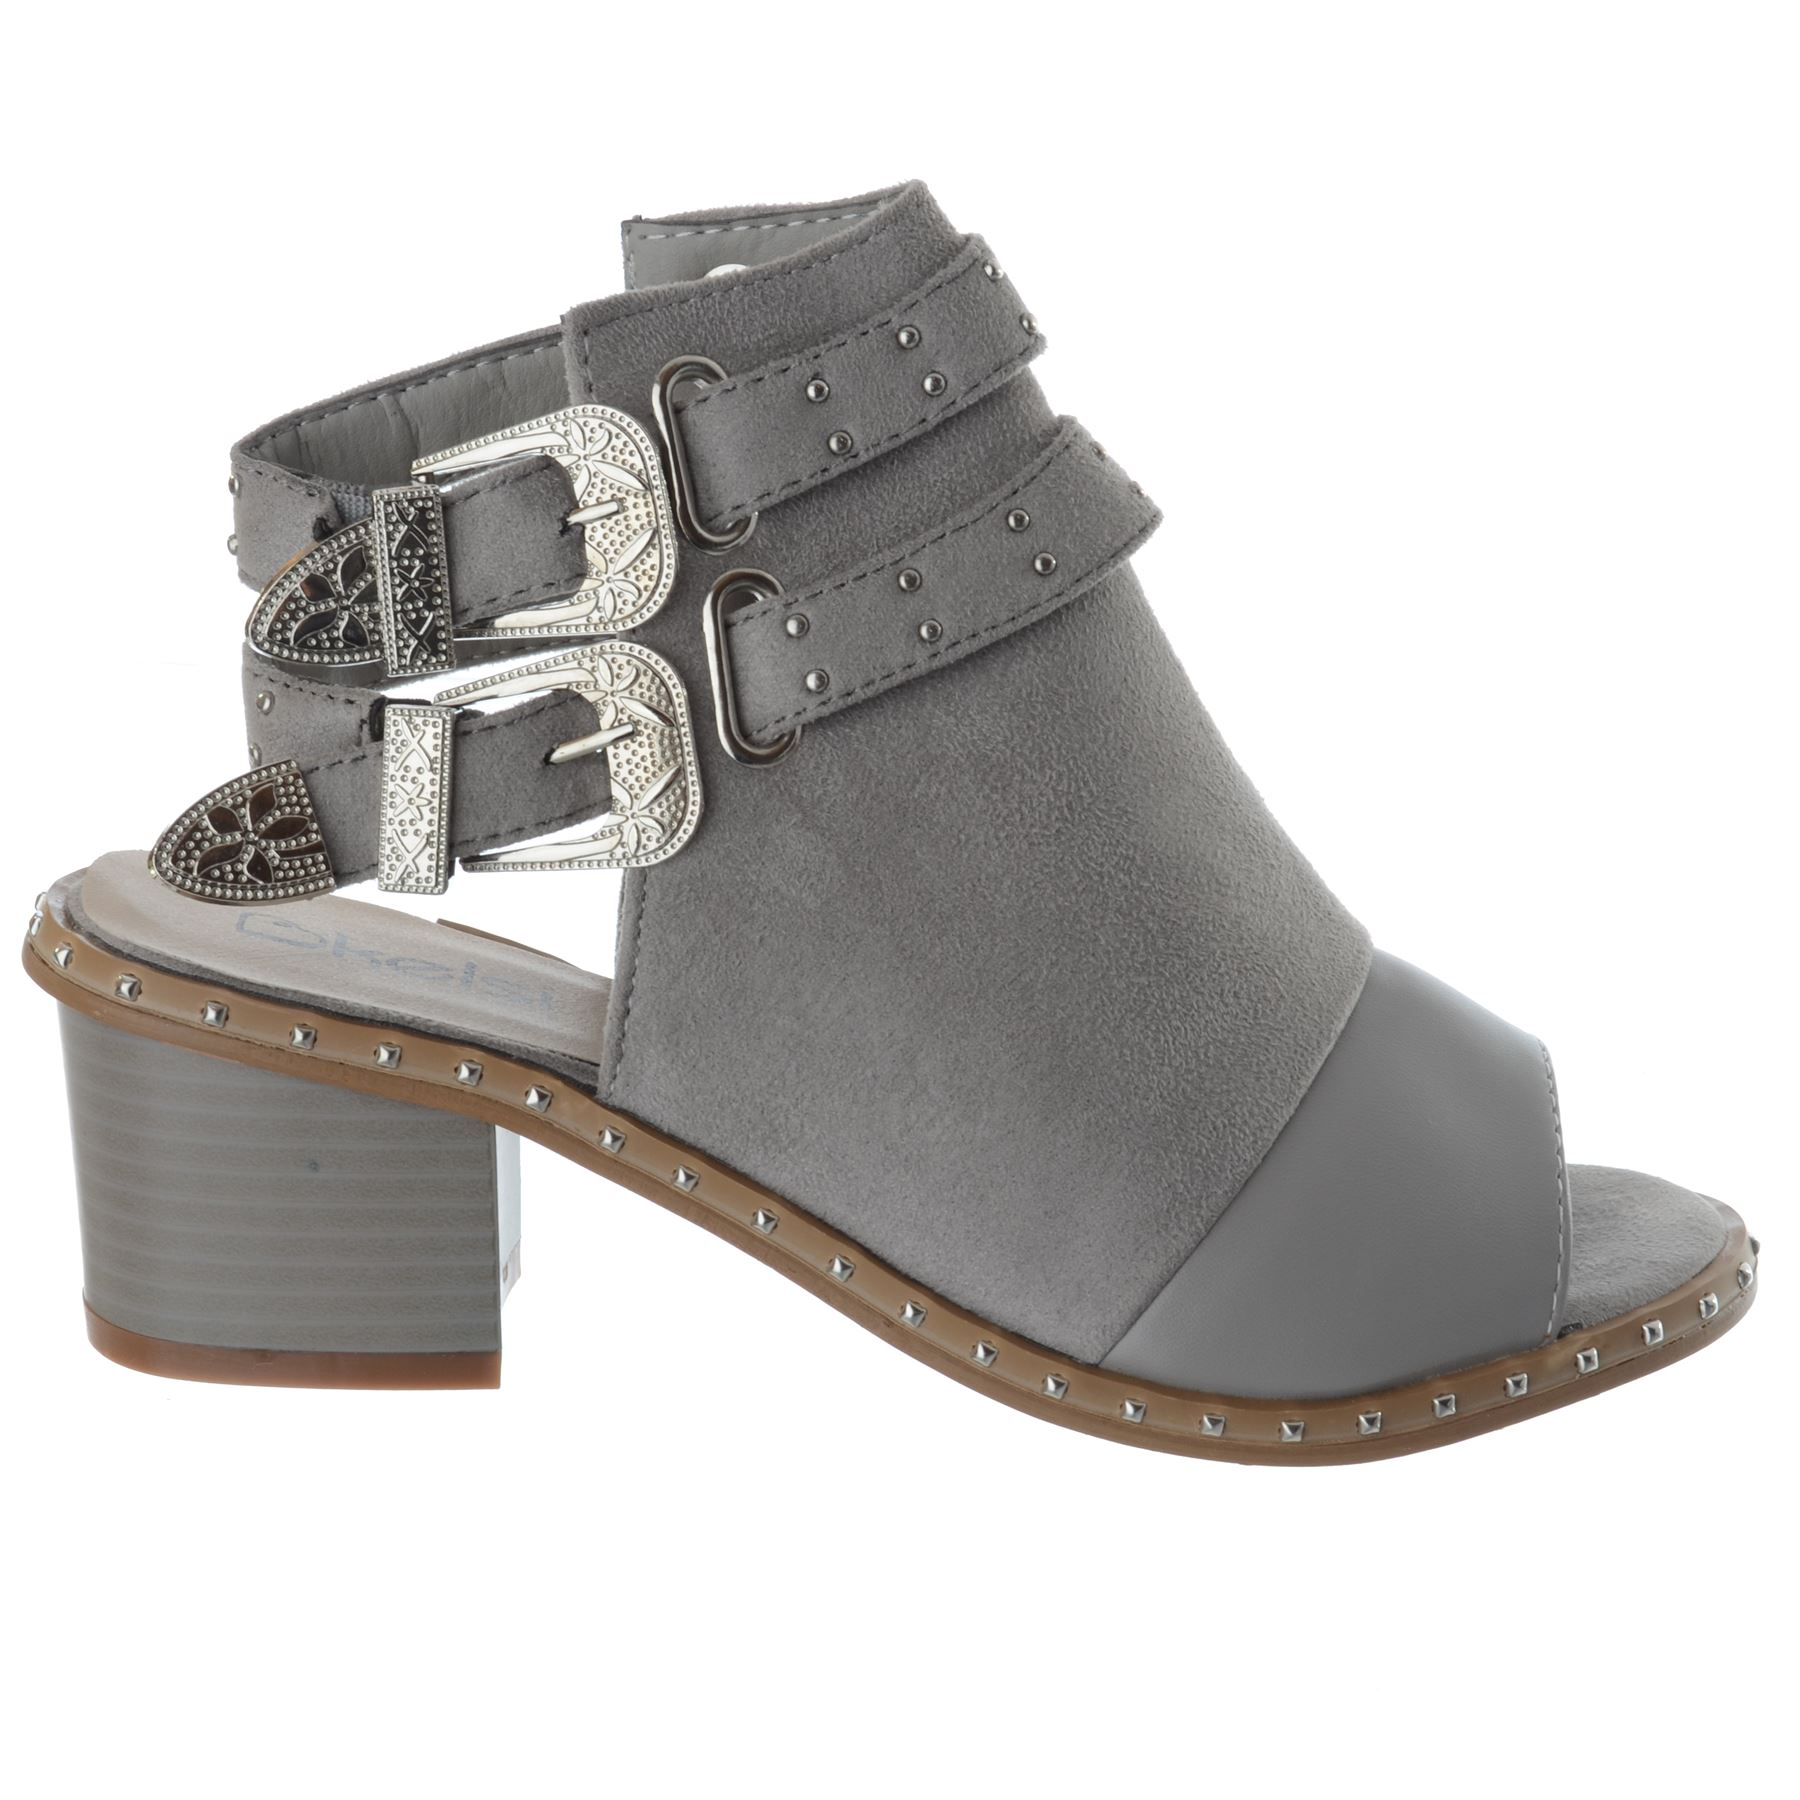 Womens-Ladies-Studded-Peep-Toe-Ankle-Strap-Chunky-Block-Heel-Sandals-Shoes-Size thumbnail 9